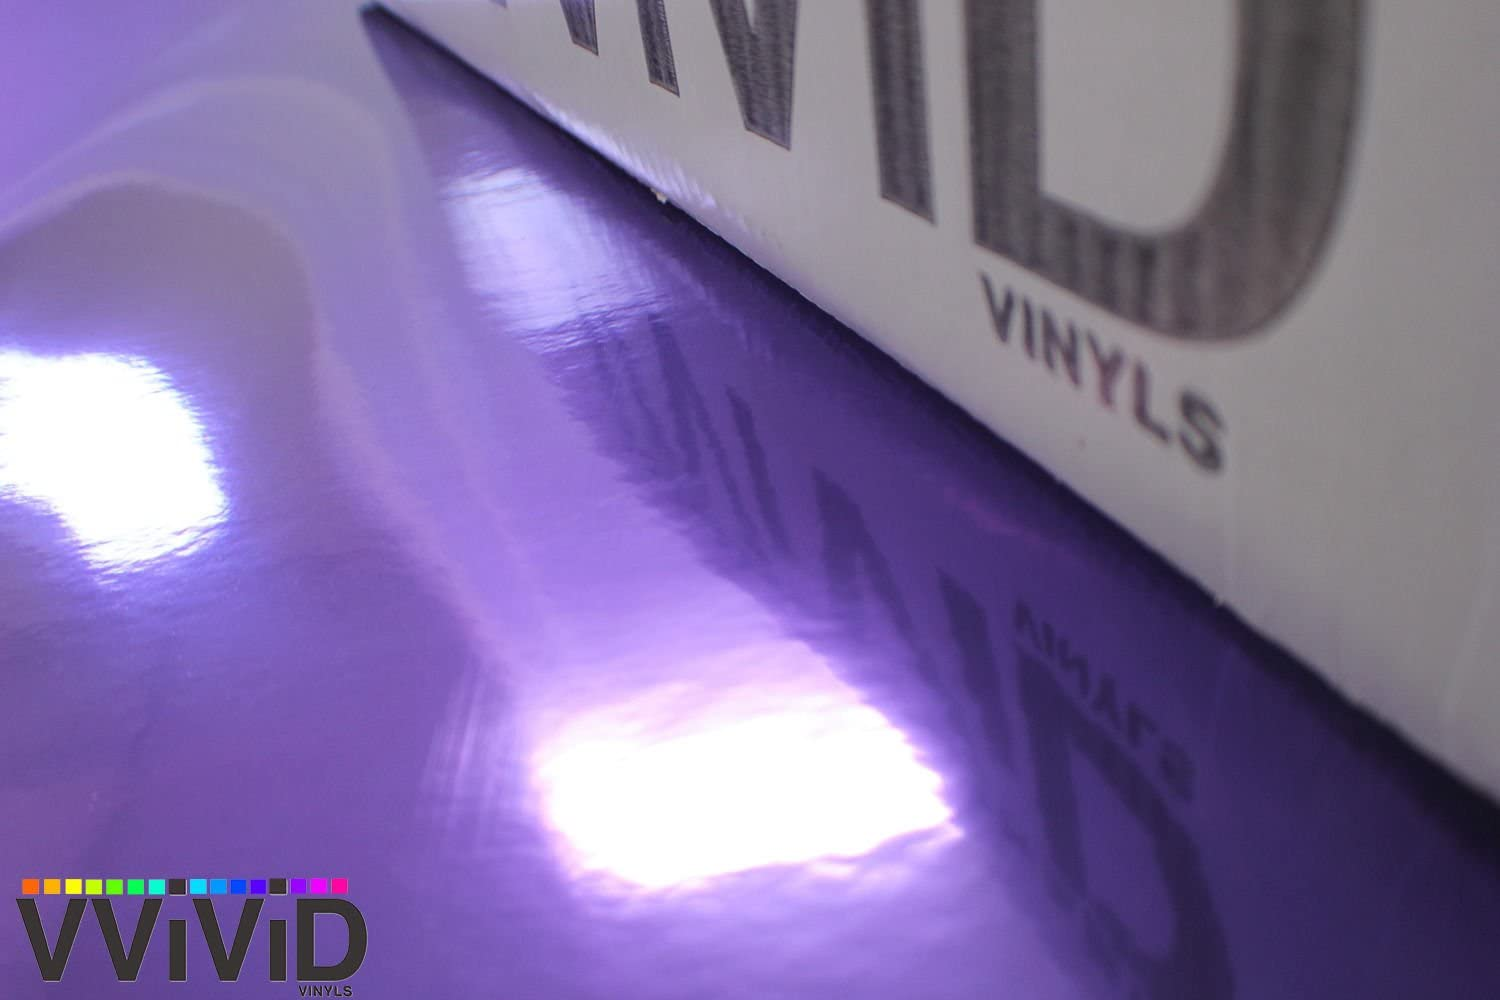 3ft x 5ft VViViD Purple Chrome Wrap Vinyl with Air-Free Channels and Ready to Use Adhesive DIY